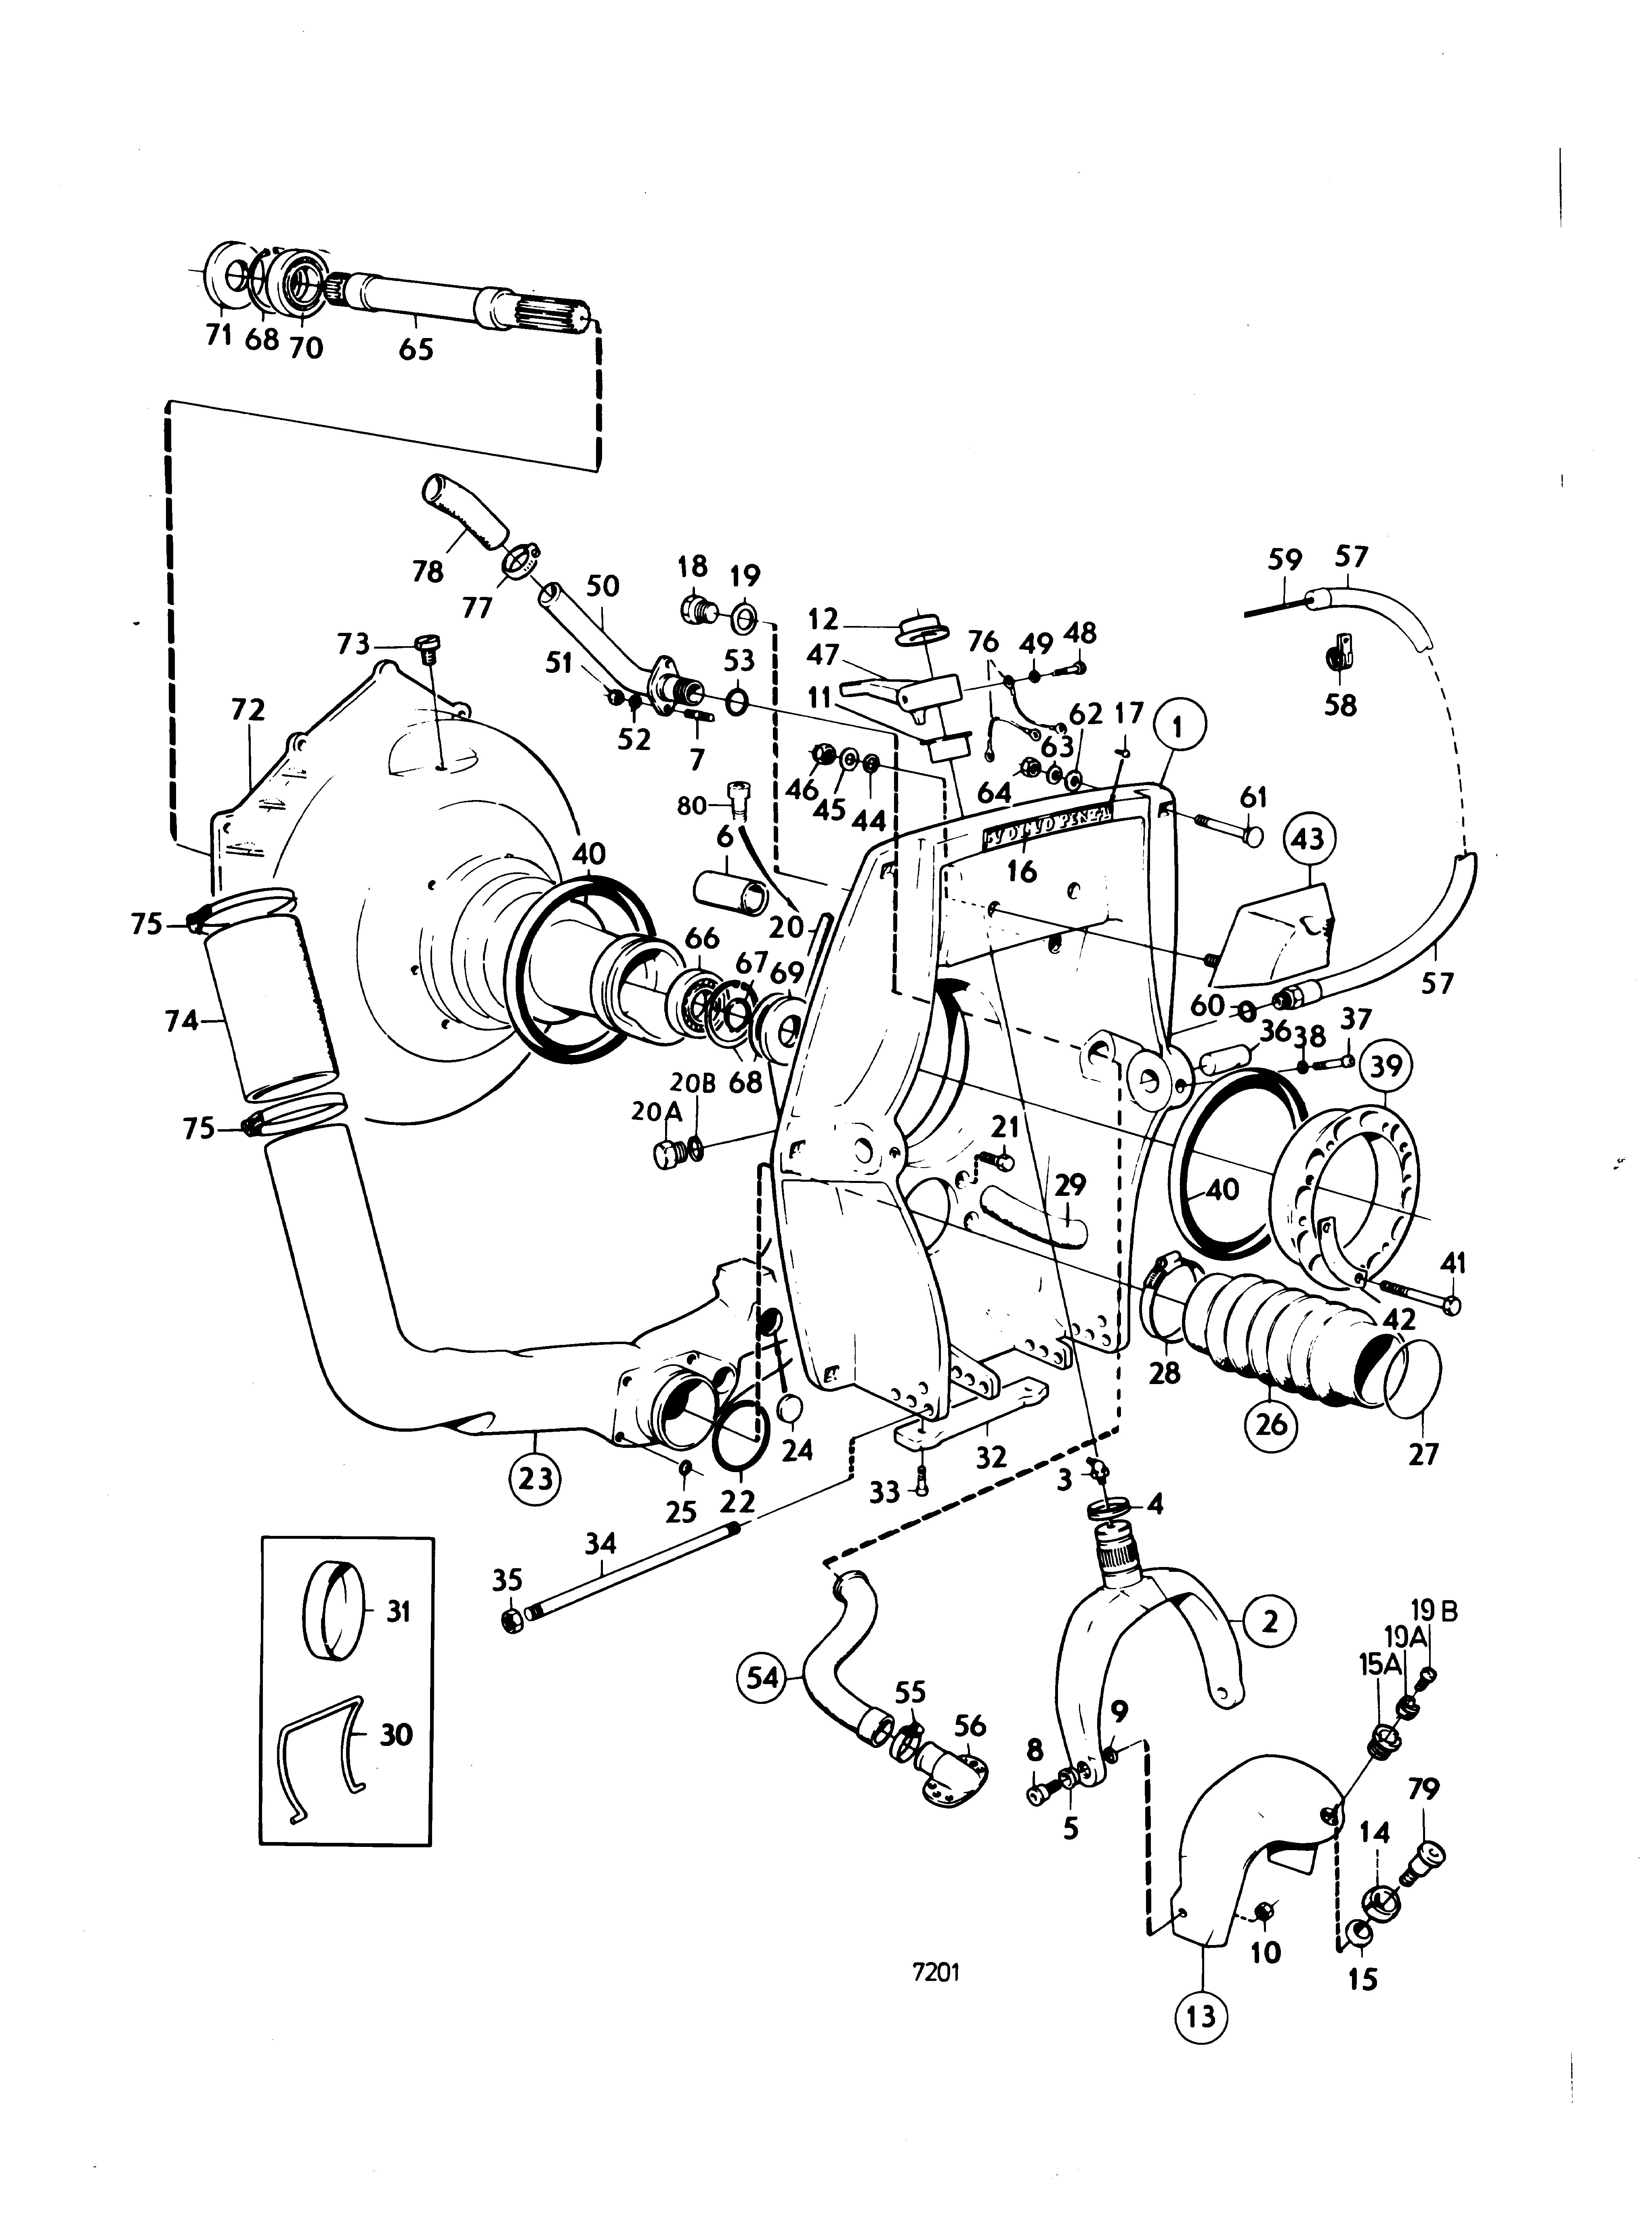 Volvo 240 Engine Diagram Wiring Library 1990 740 Gle Wagon Parts Electricity Basics 101 Of